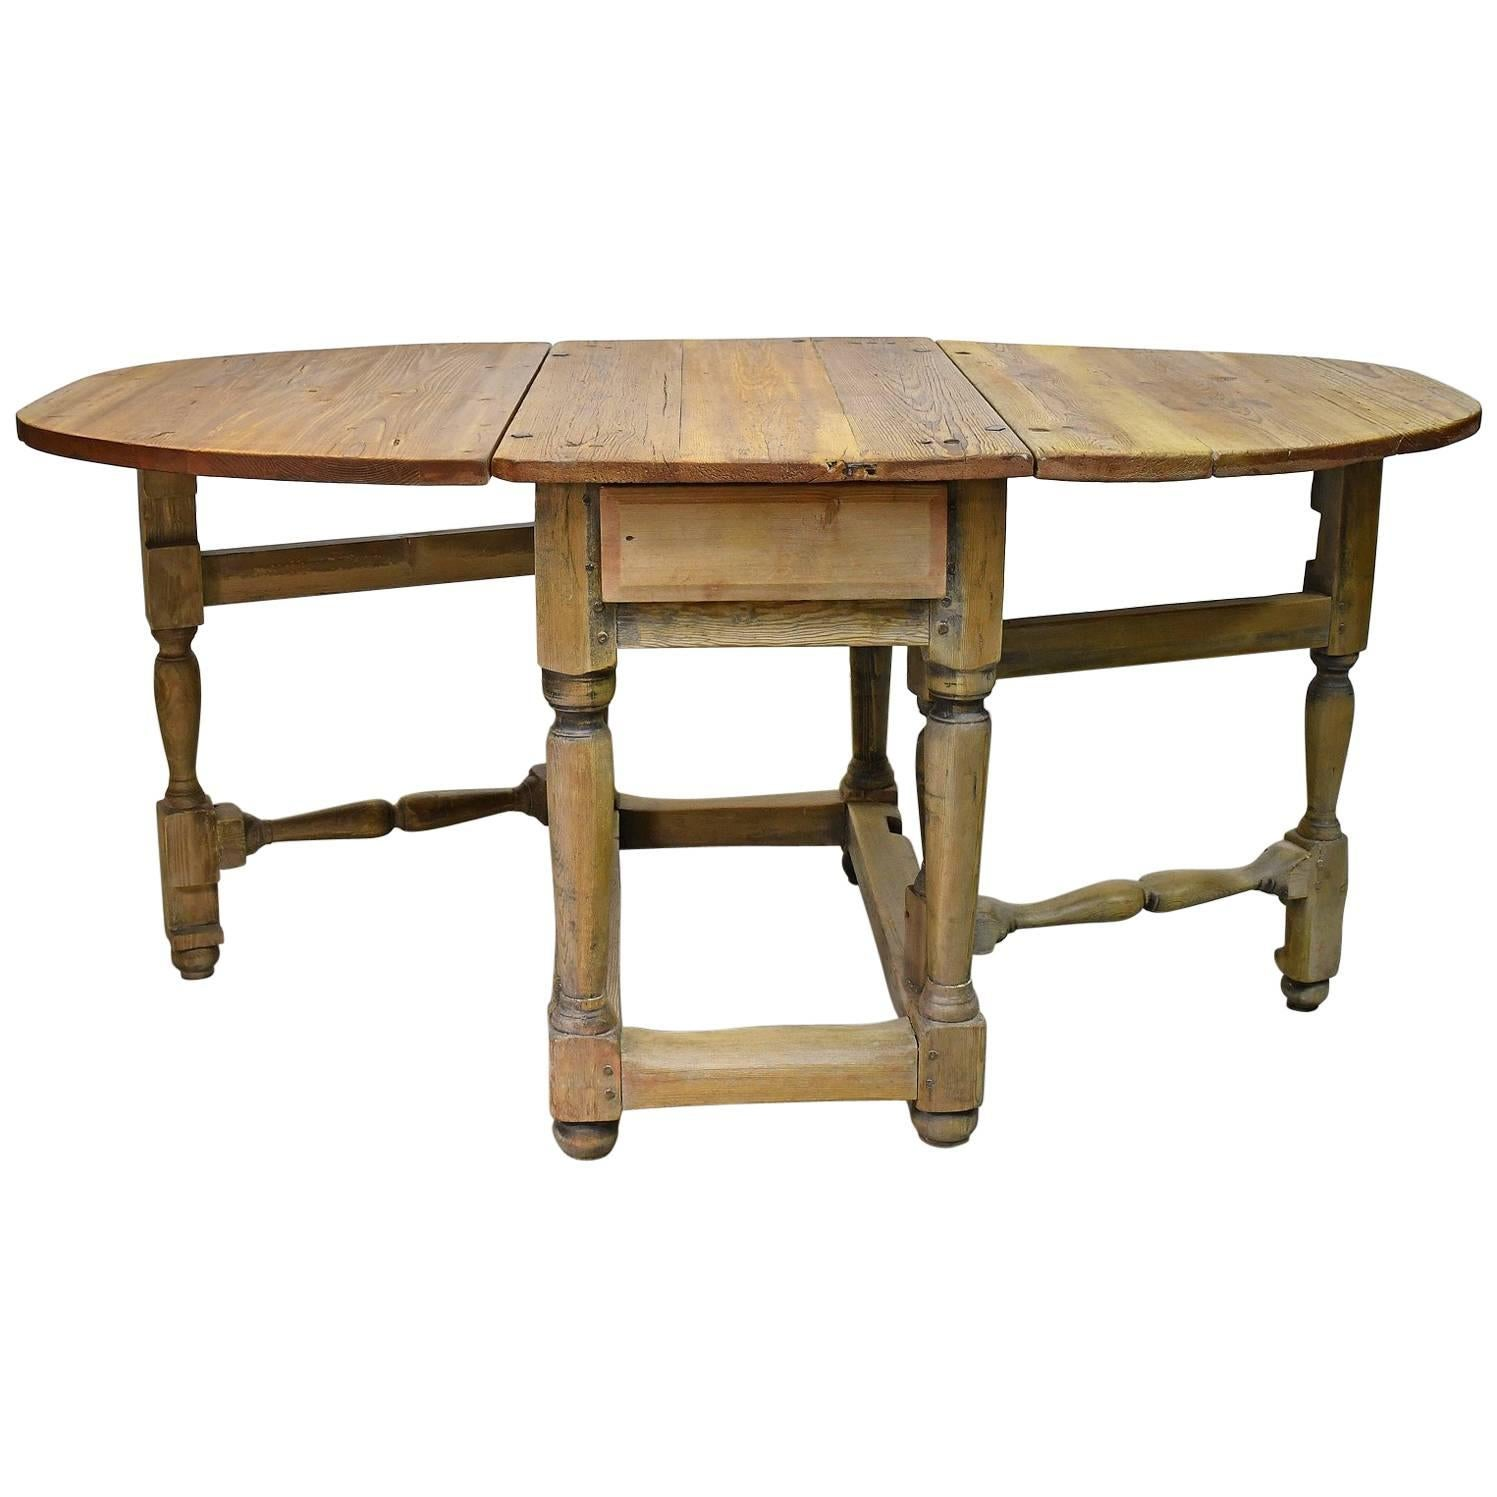 18th Century Norwegian Baroque Drop Leaf Farmhouse Table In Pine For Sale